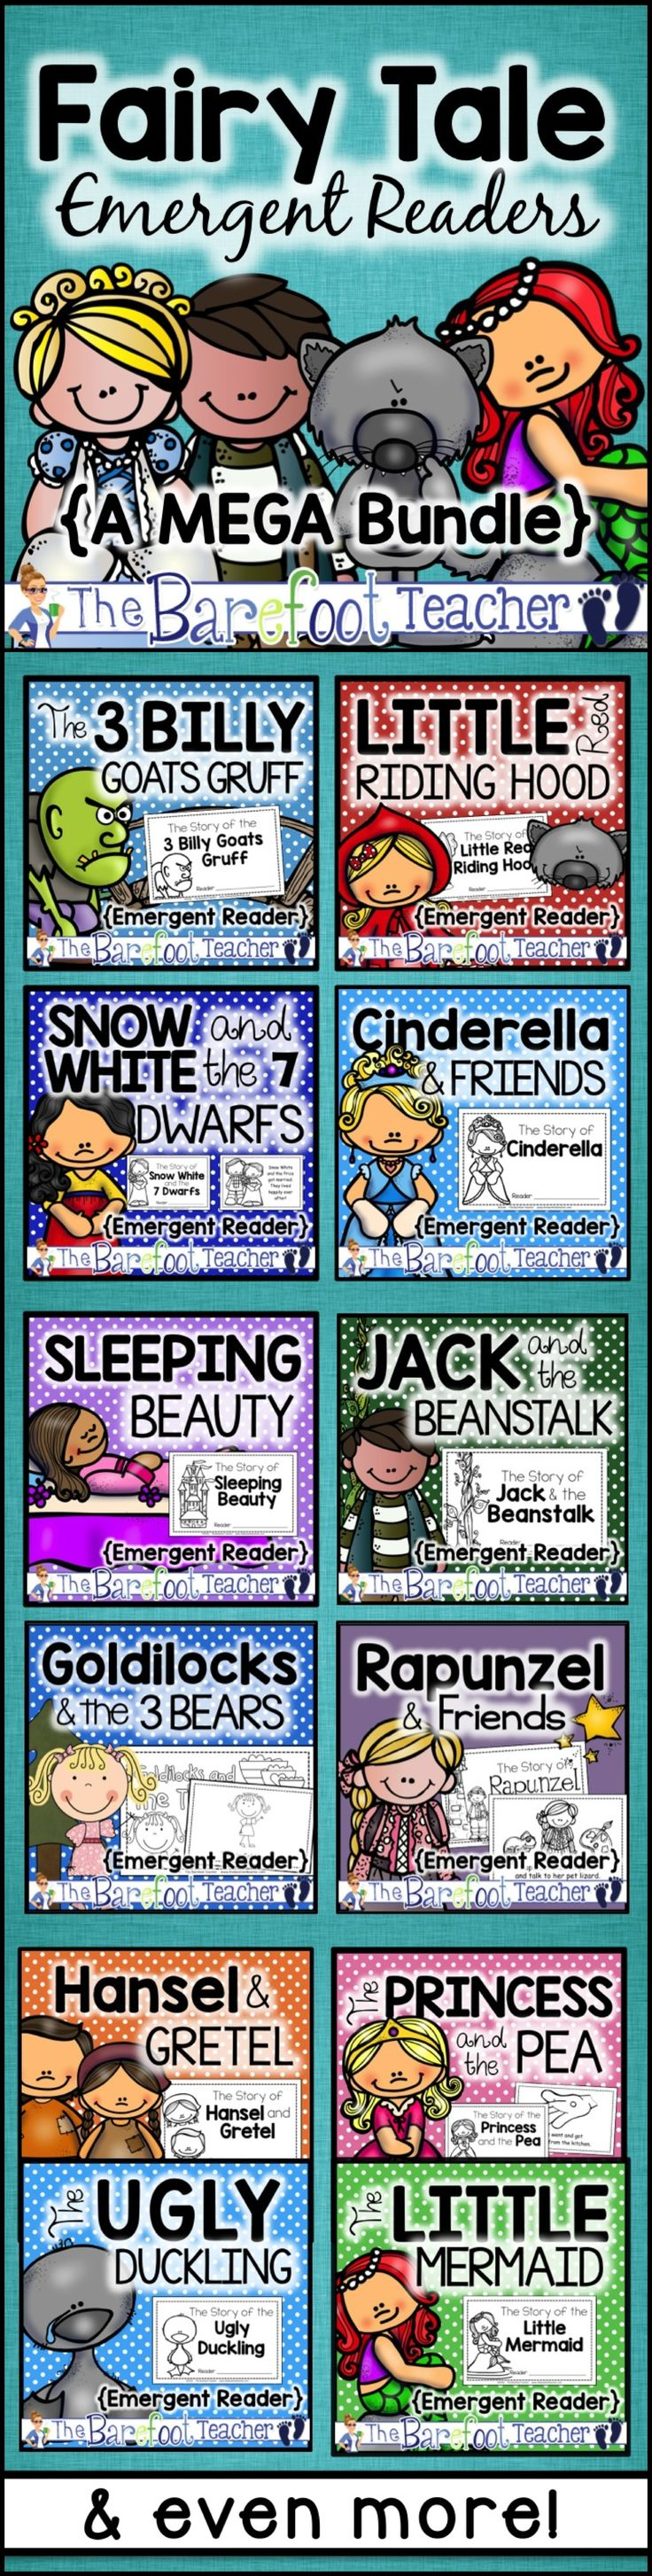 These Fairy Tale Emergent Readers take a complex story and simplify it for your Kindergarten or First Grade students to read! Each of the 16 books includes easy to read text and tell the story in simple, easy to understand sentences. Favorites included such as: Little Red Riding Hood, Snow White, Jack & the Beanstalk, Cinderella, 3 Billy Goats Gruff, The Little Mermaid, The Ugly Duckling, Goldilocks & the 3 Bears, Rapunzel, & more!